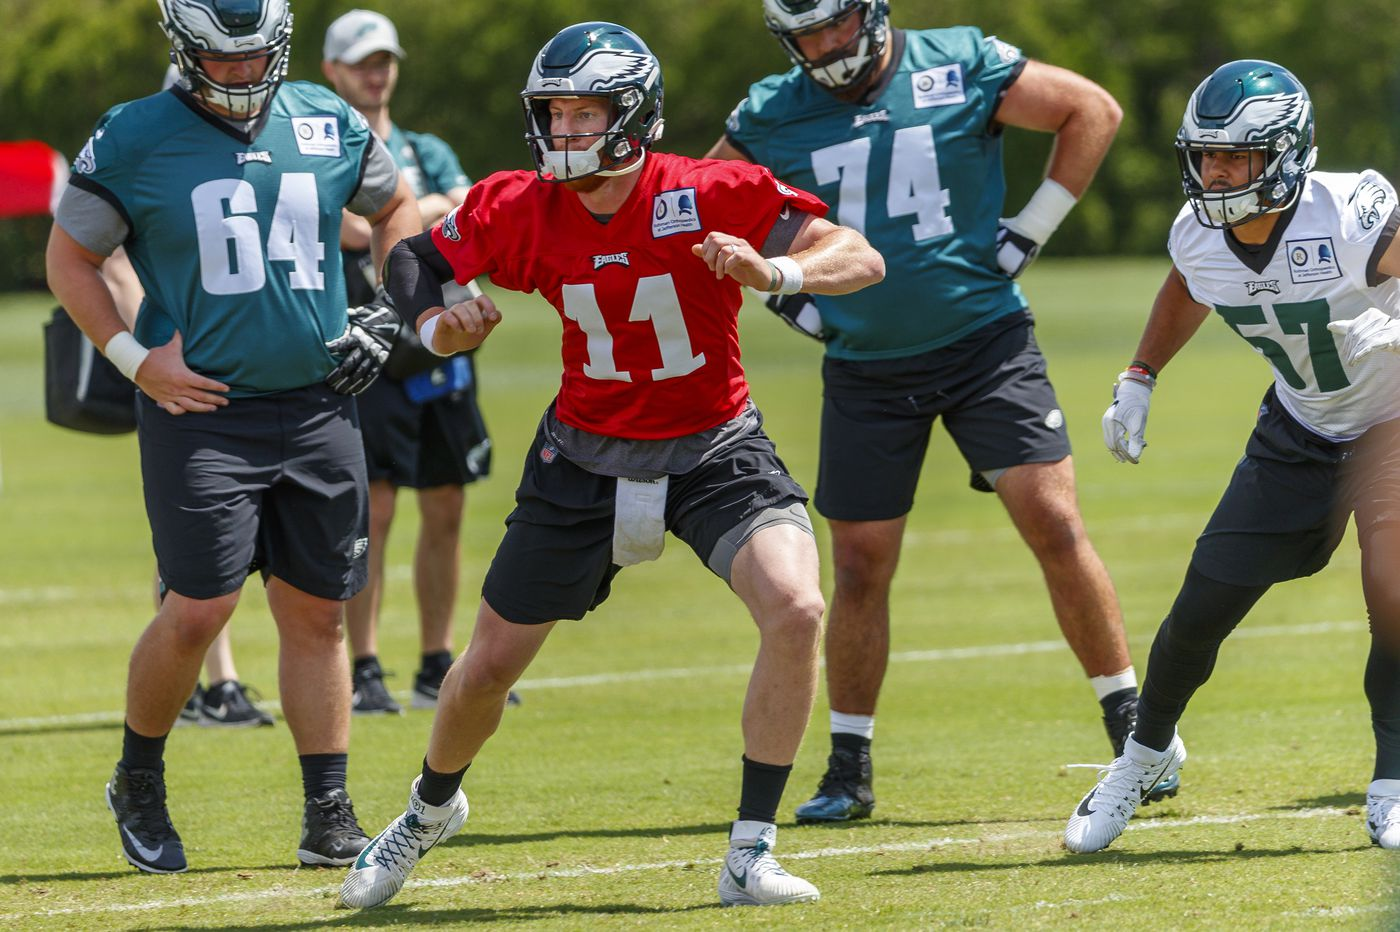 Carson Wentz back at practice for Eagles without a knee brace or restrictions